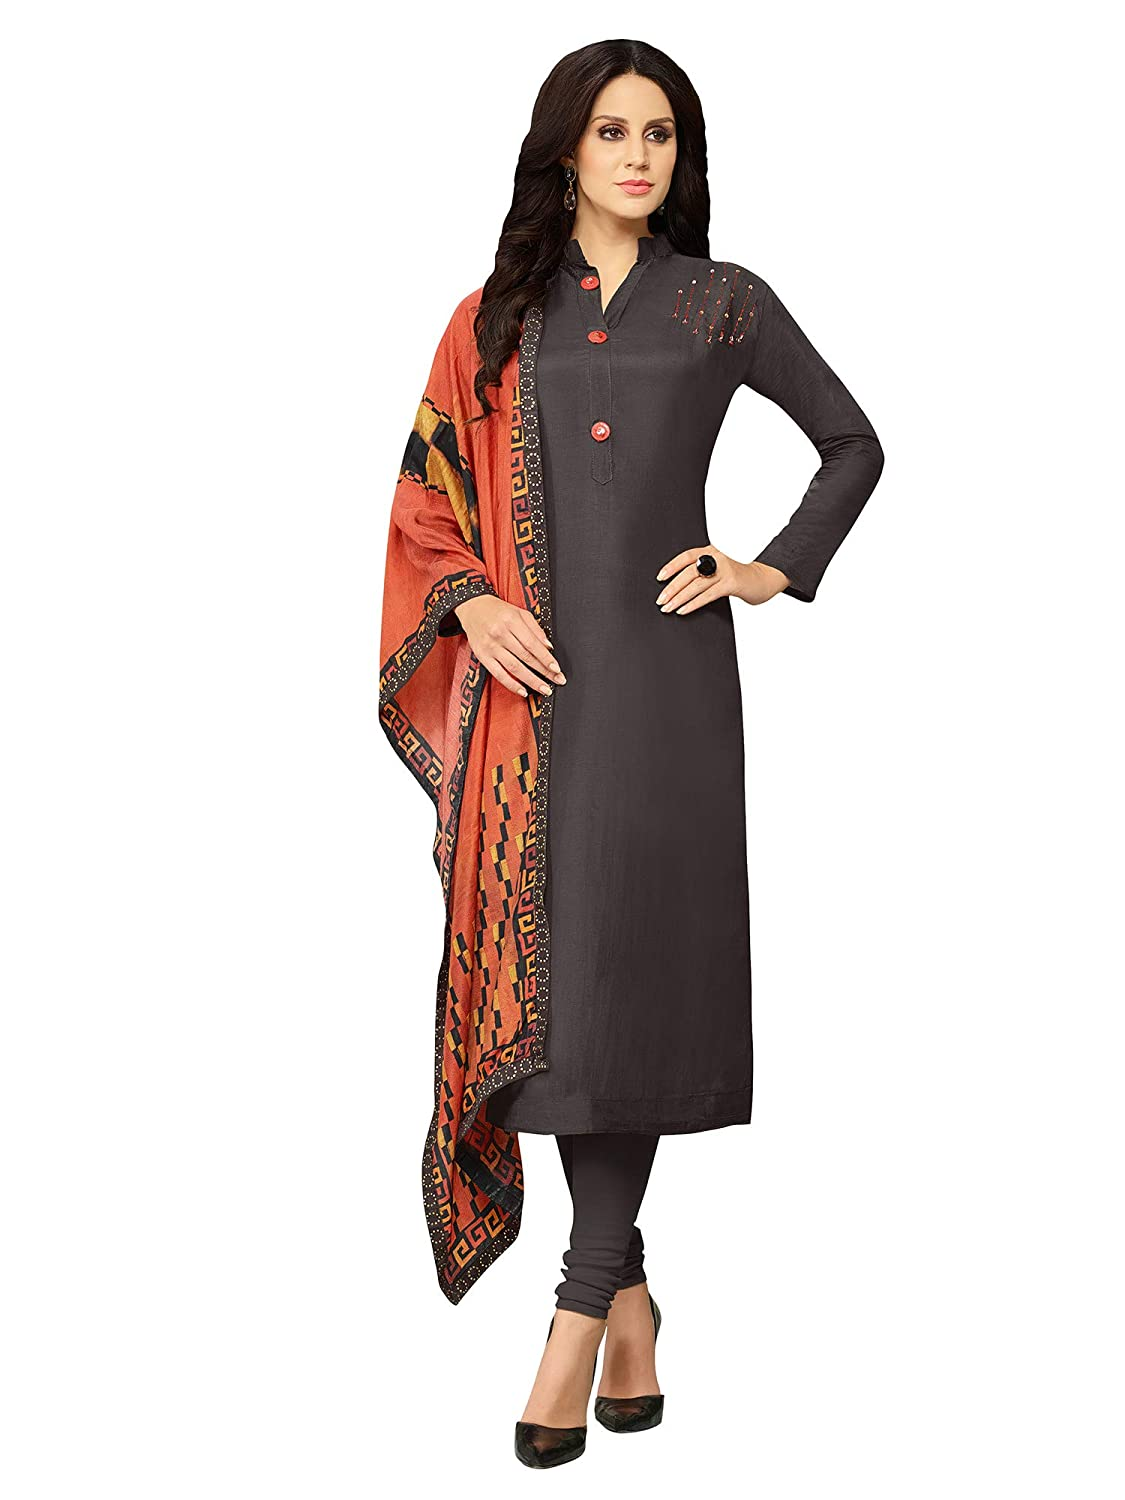 3362134d7f Applecreation Women'S Cotton Silk Unstitched Salwar Suit Material  (Black_Free Size): Amazon.in: Clothing & Accessories